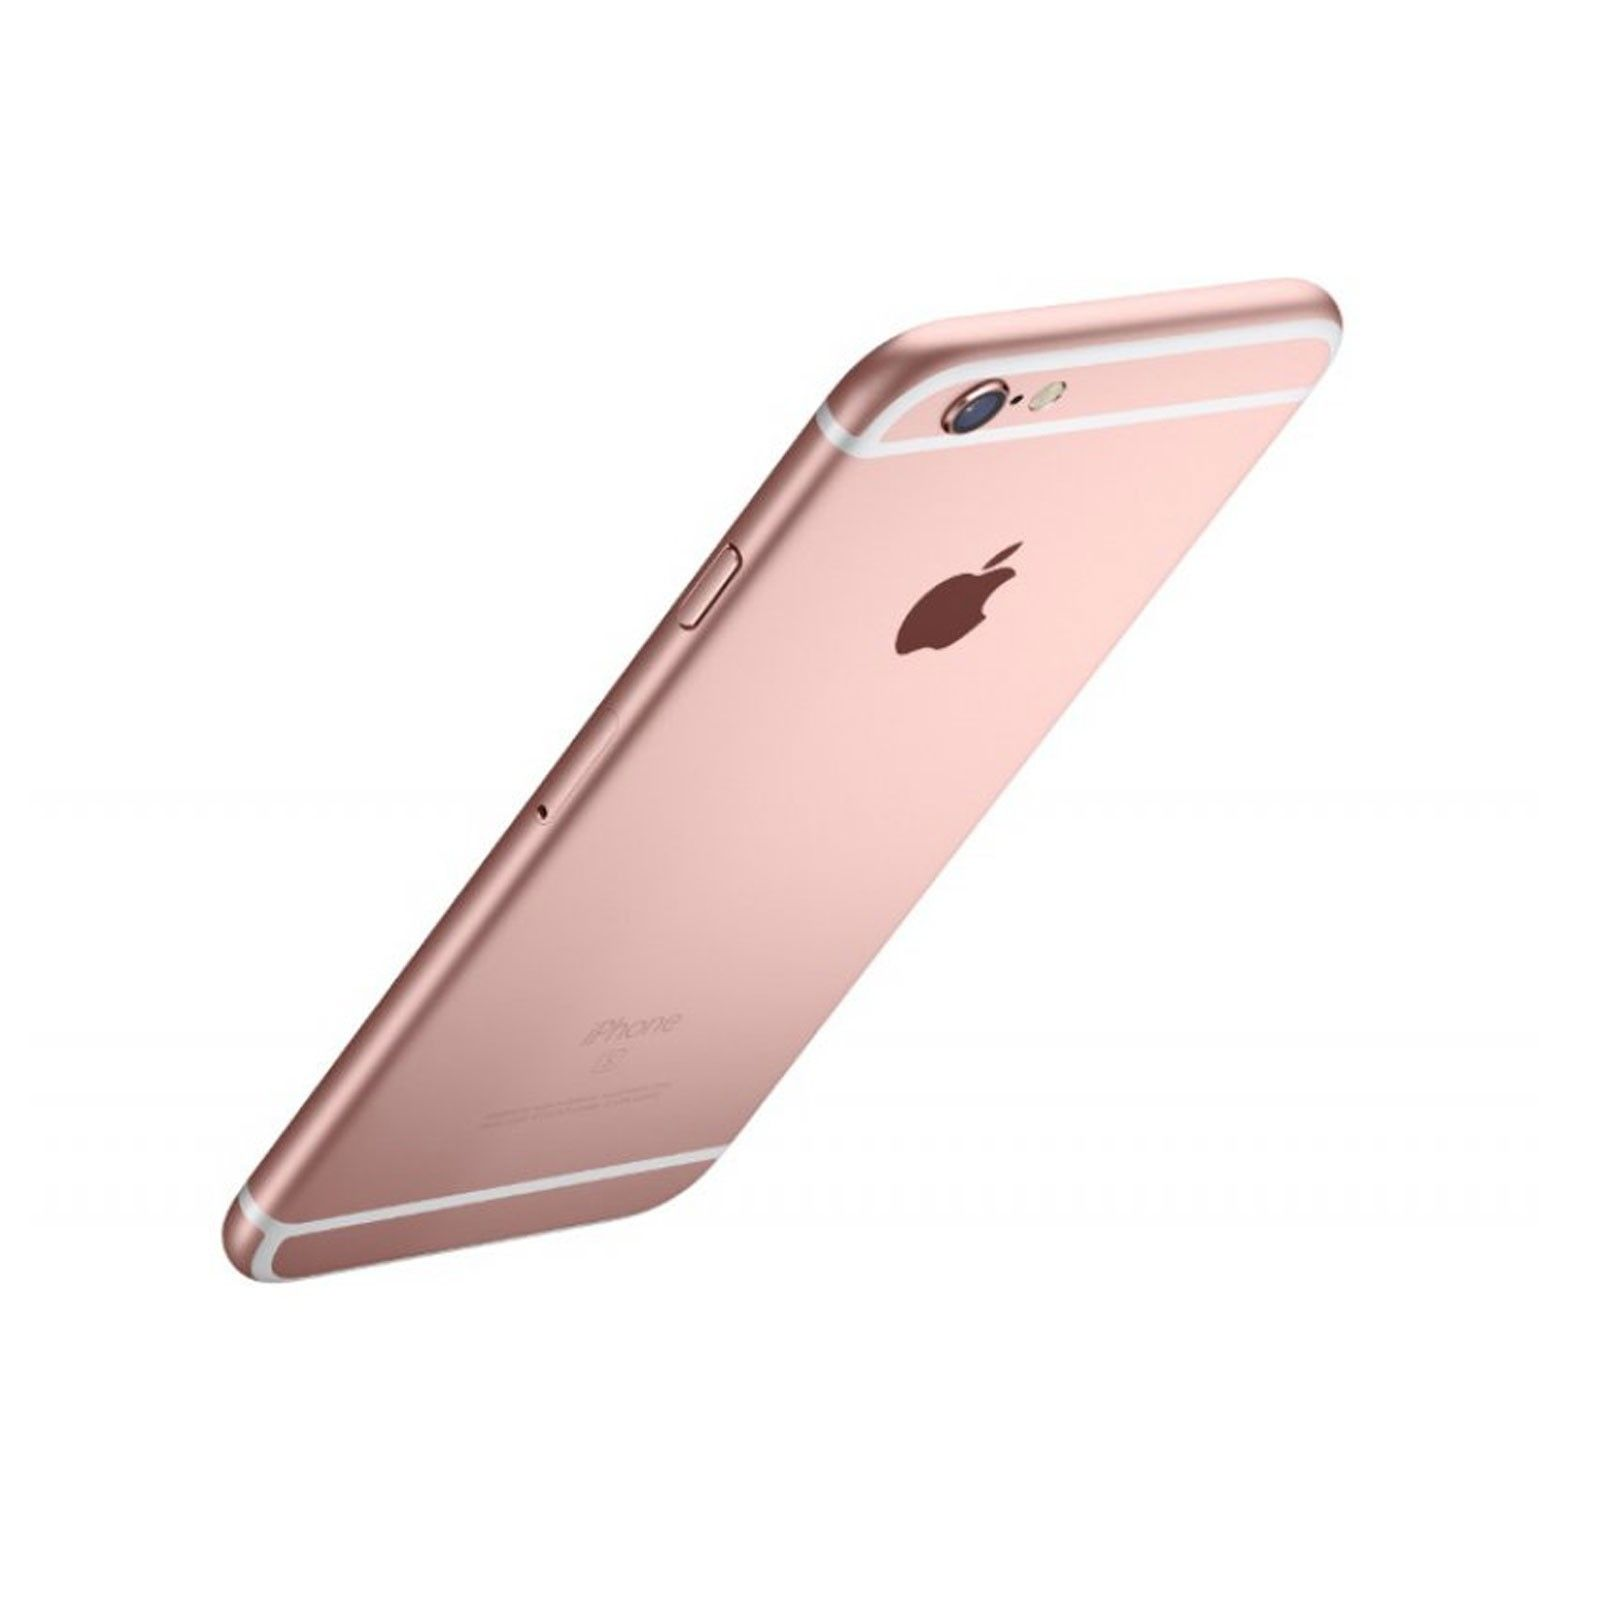 Apple IPhone 6s Plus Rose Gold 16GB Get Free Shipping And Cash